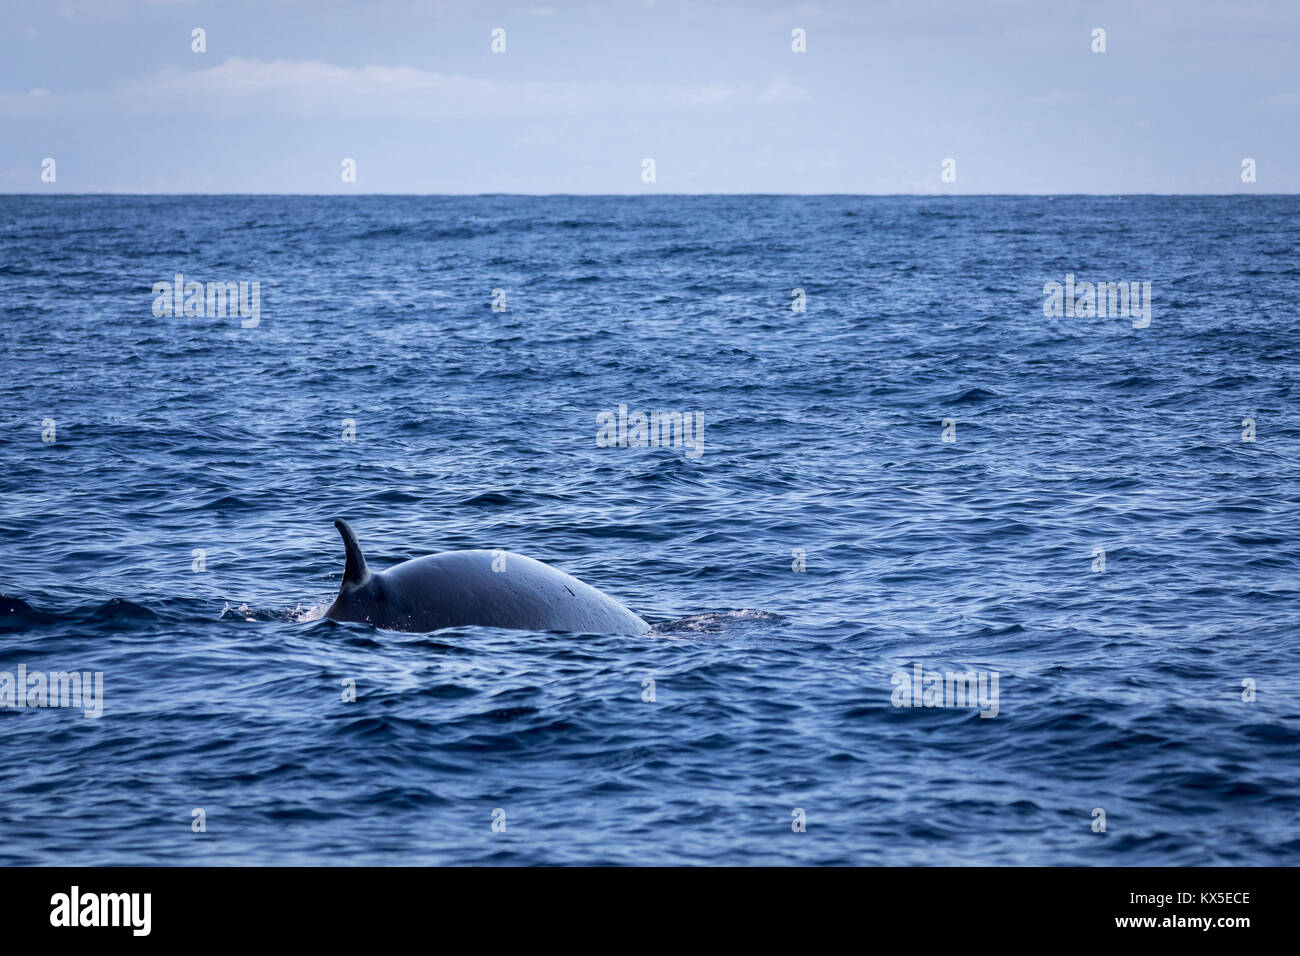 Brydes whale, Balaenoptera brydei,showing its dorsal fin in the Atlantic ocean near Gran Canaria. - Stock Image